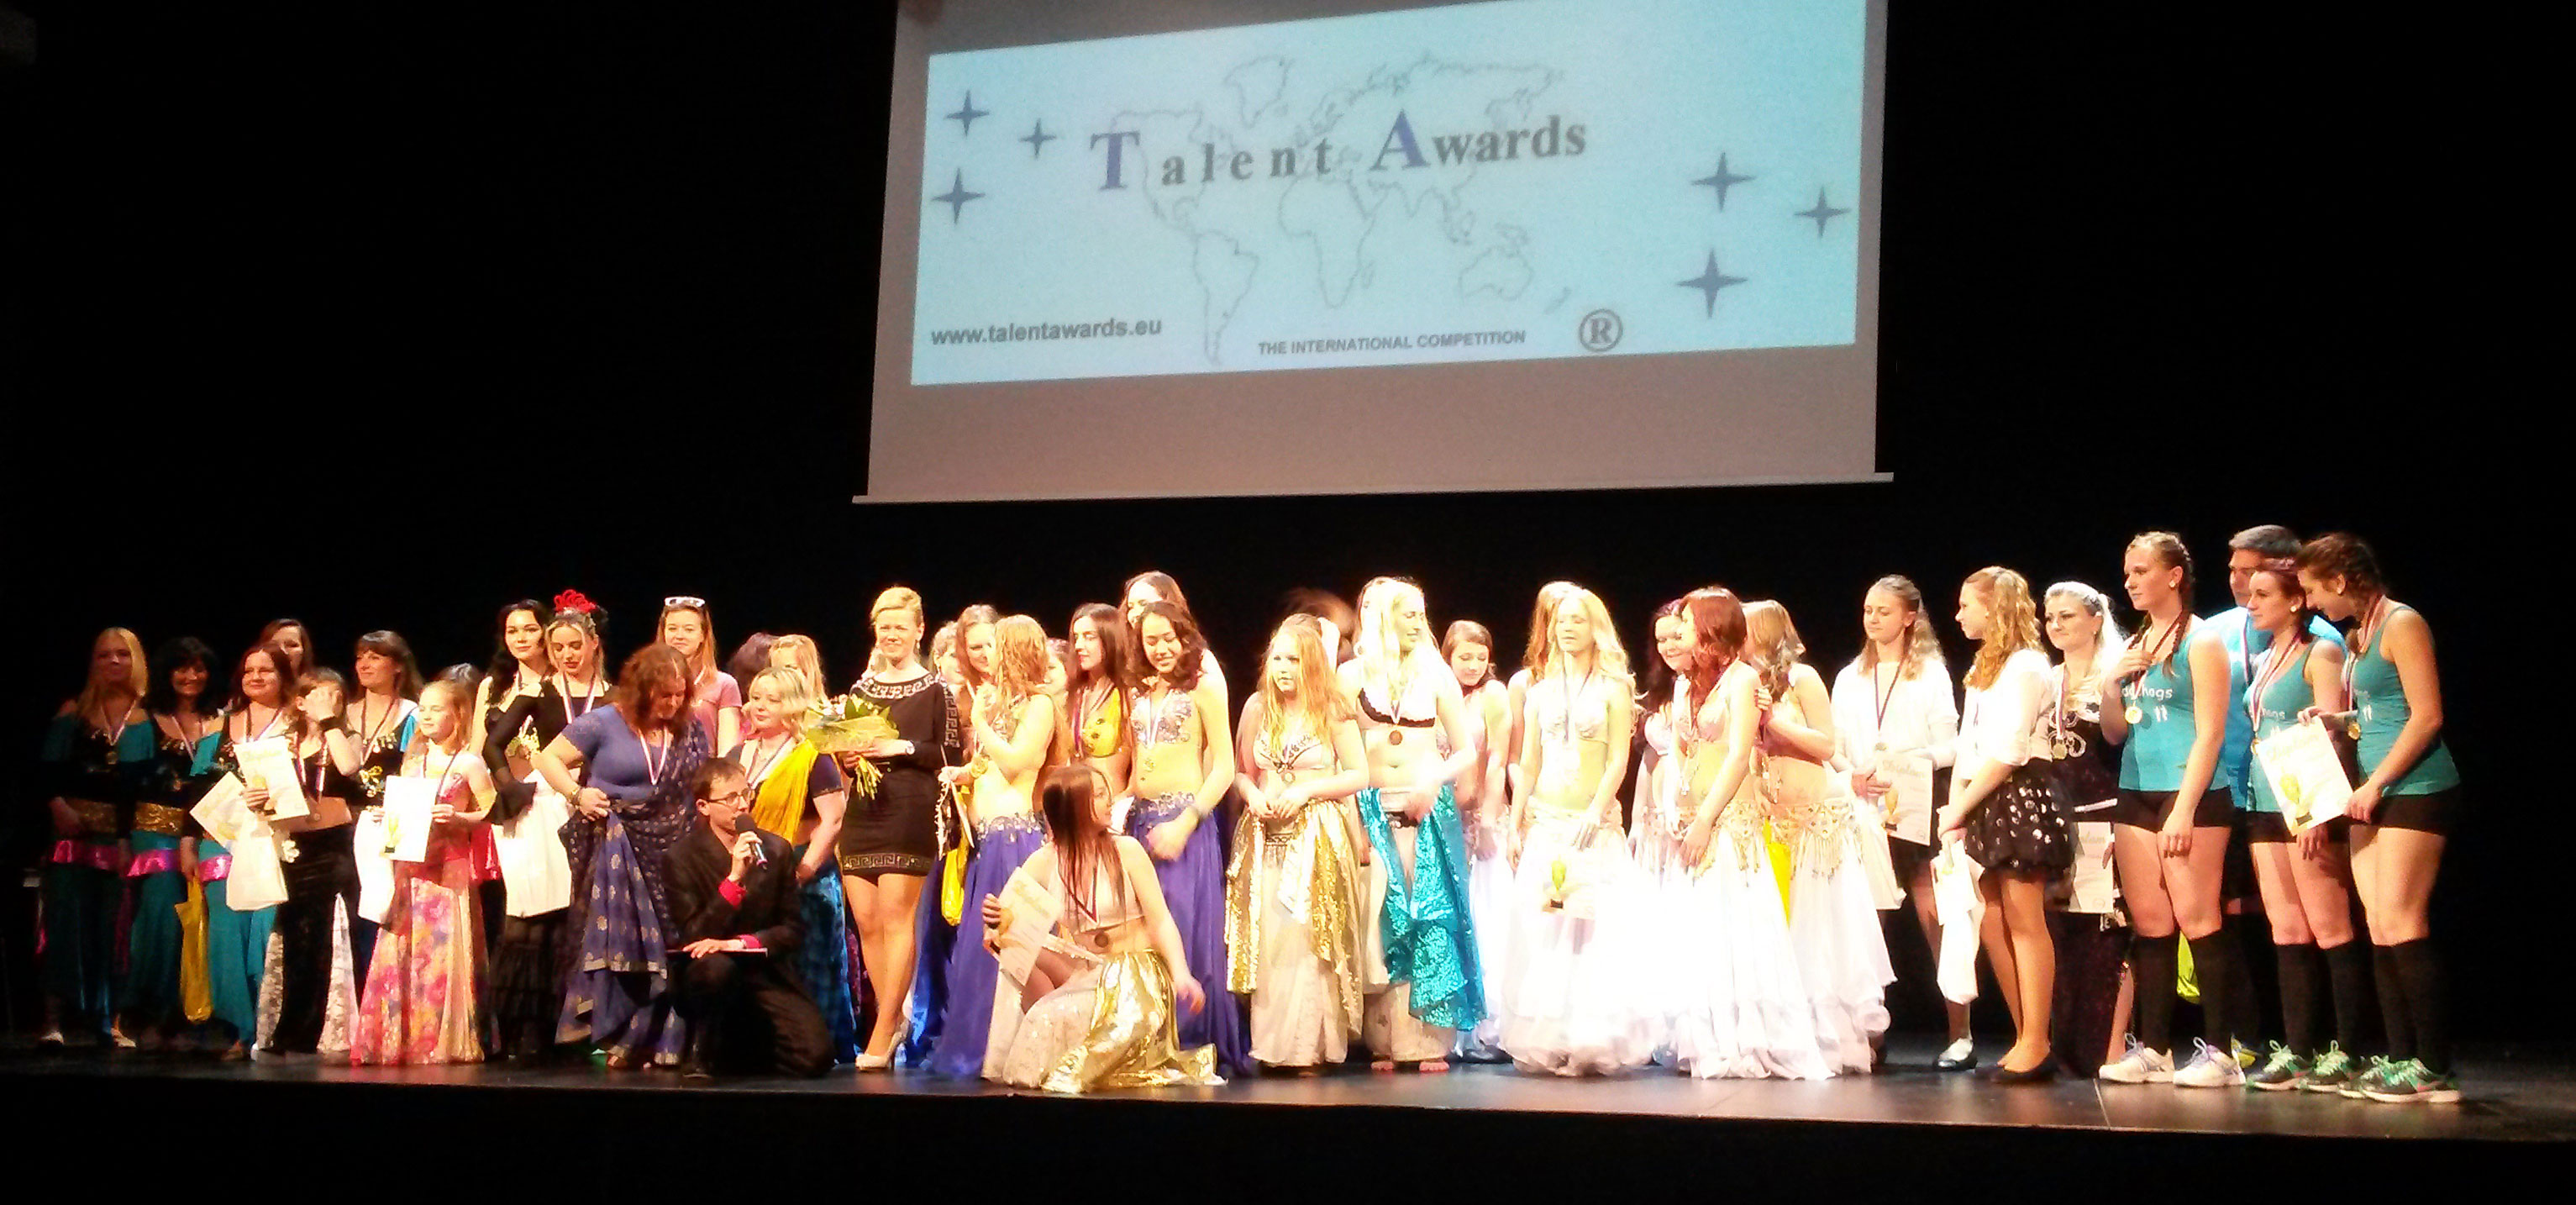 Finále Talent Awards 2016